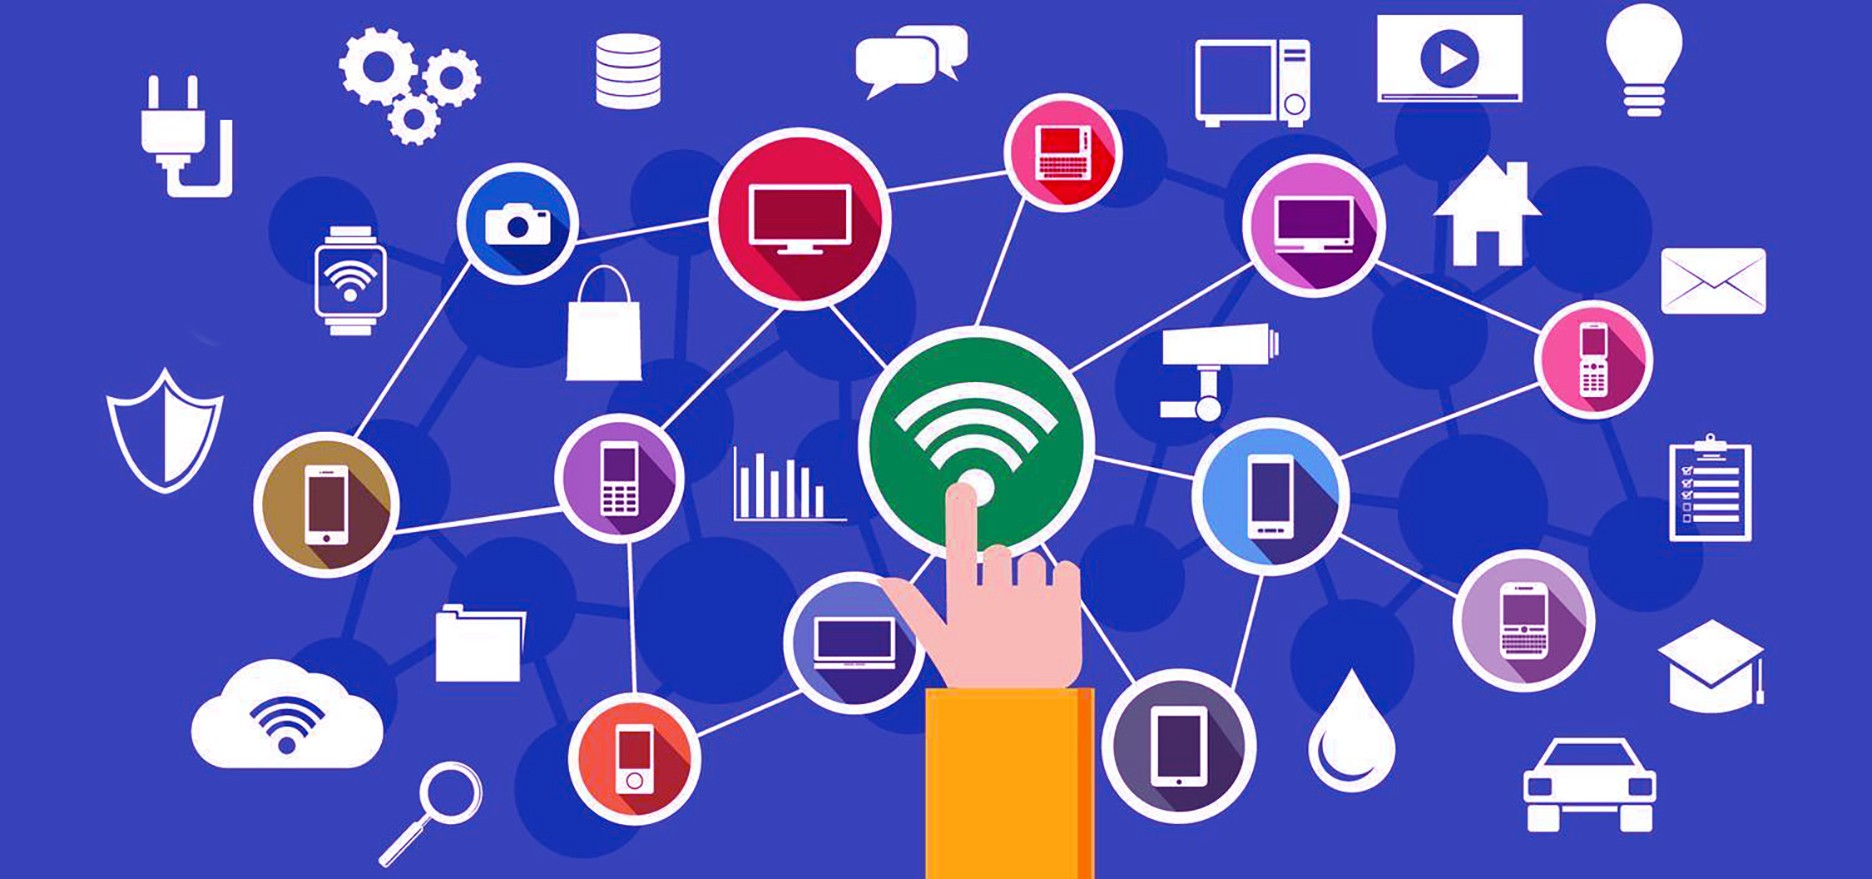 Implications of the IoT Connectivity Binge: Convenient, threatening,  magical and likely to significantly diminish civil liberties   by Janna Q.  Anderson   Medium